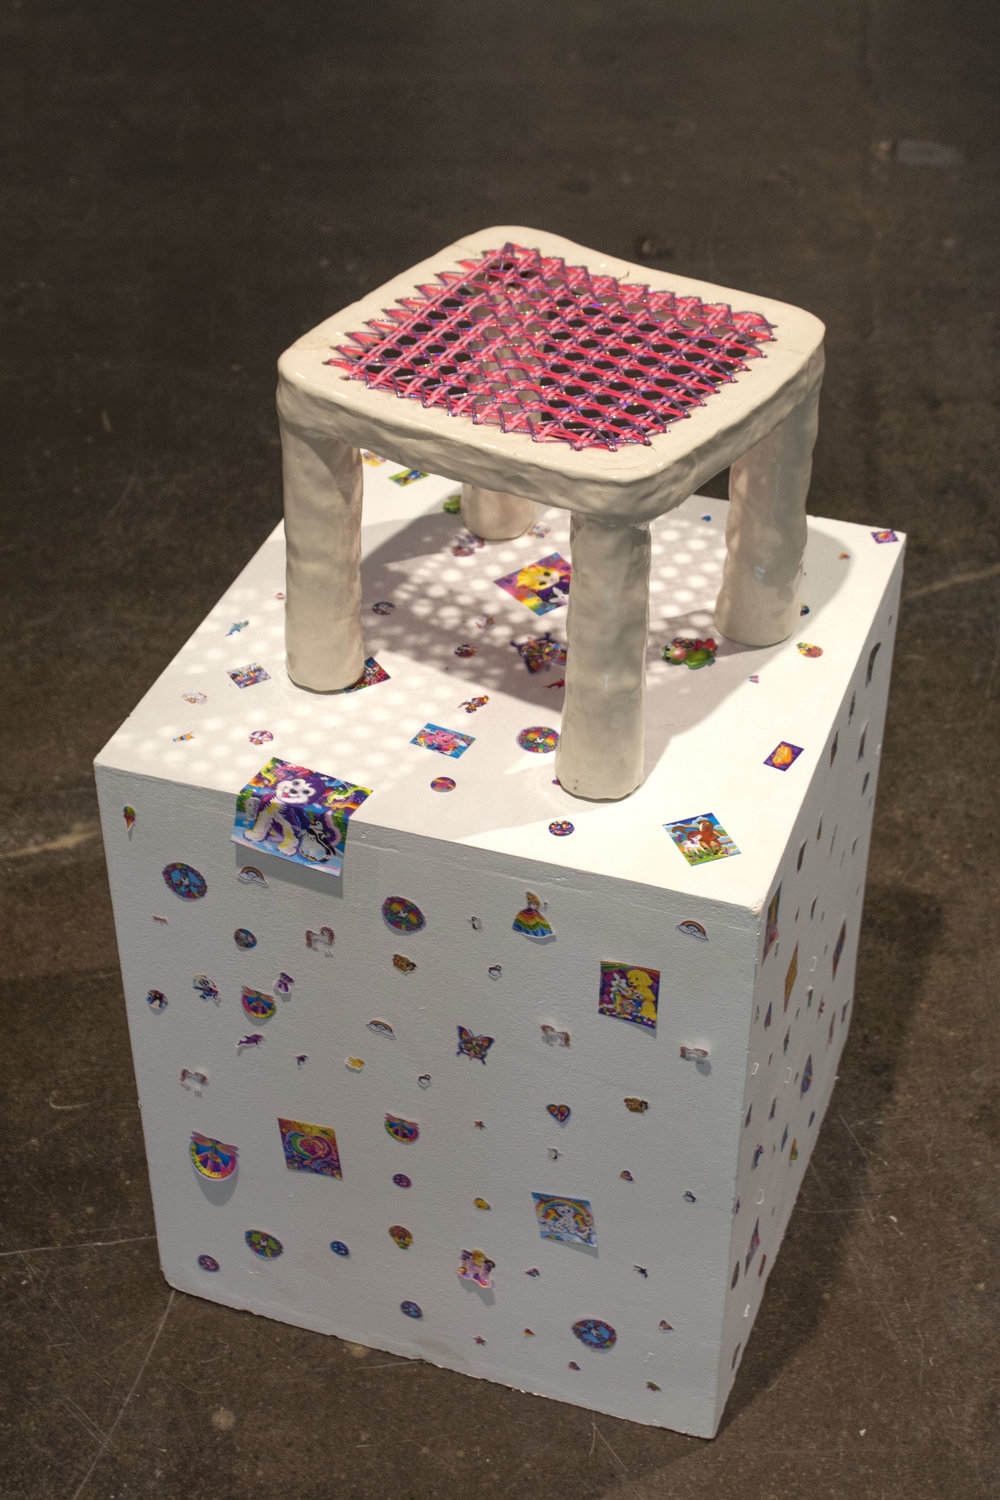 "Stool 1 (Lisa Frank), Ceramic sculpture, palstic lacing cord, 10"" x 10"" x 10"", 2018"